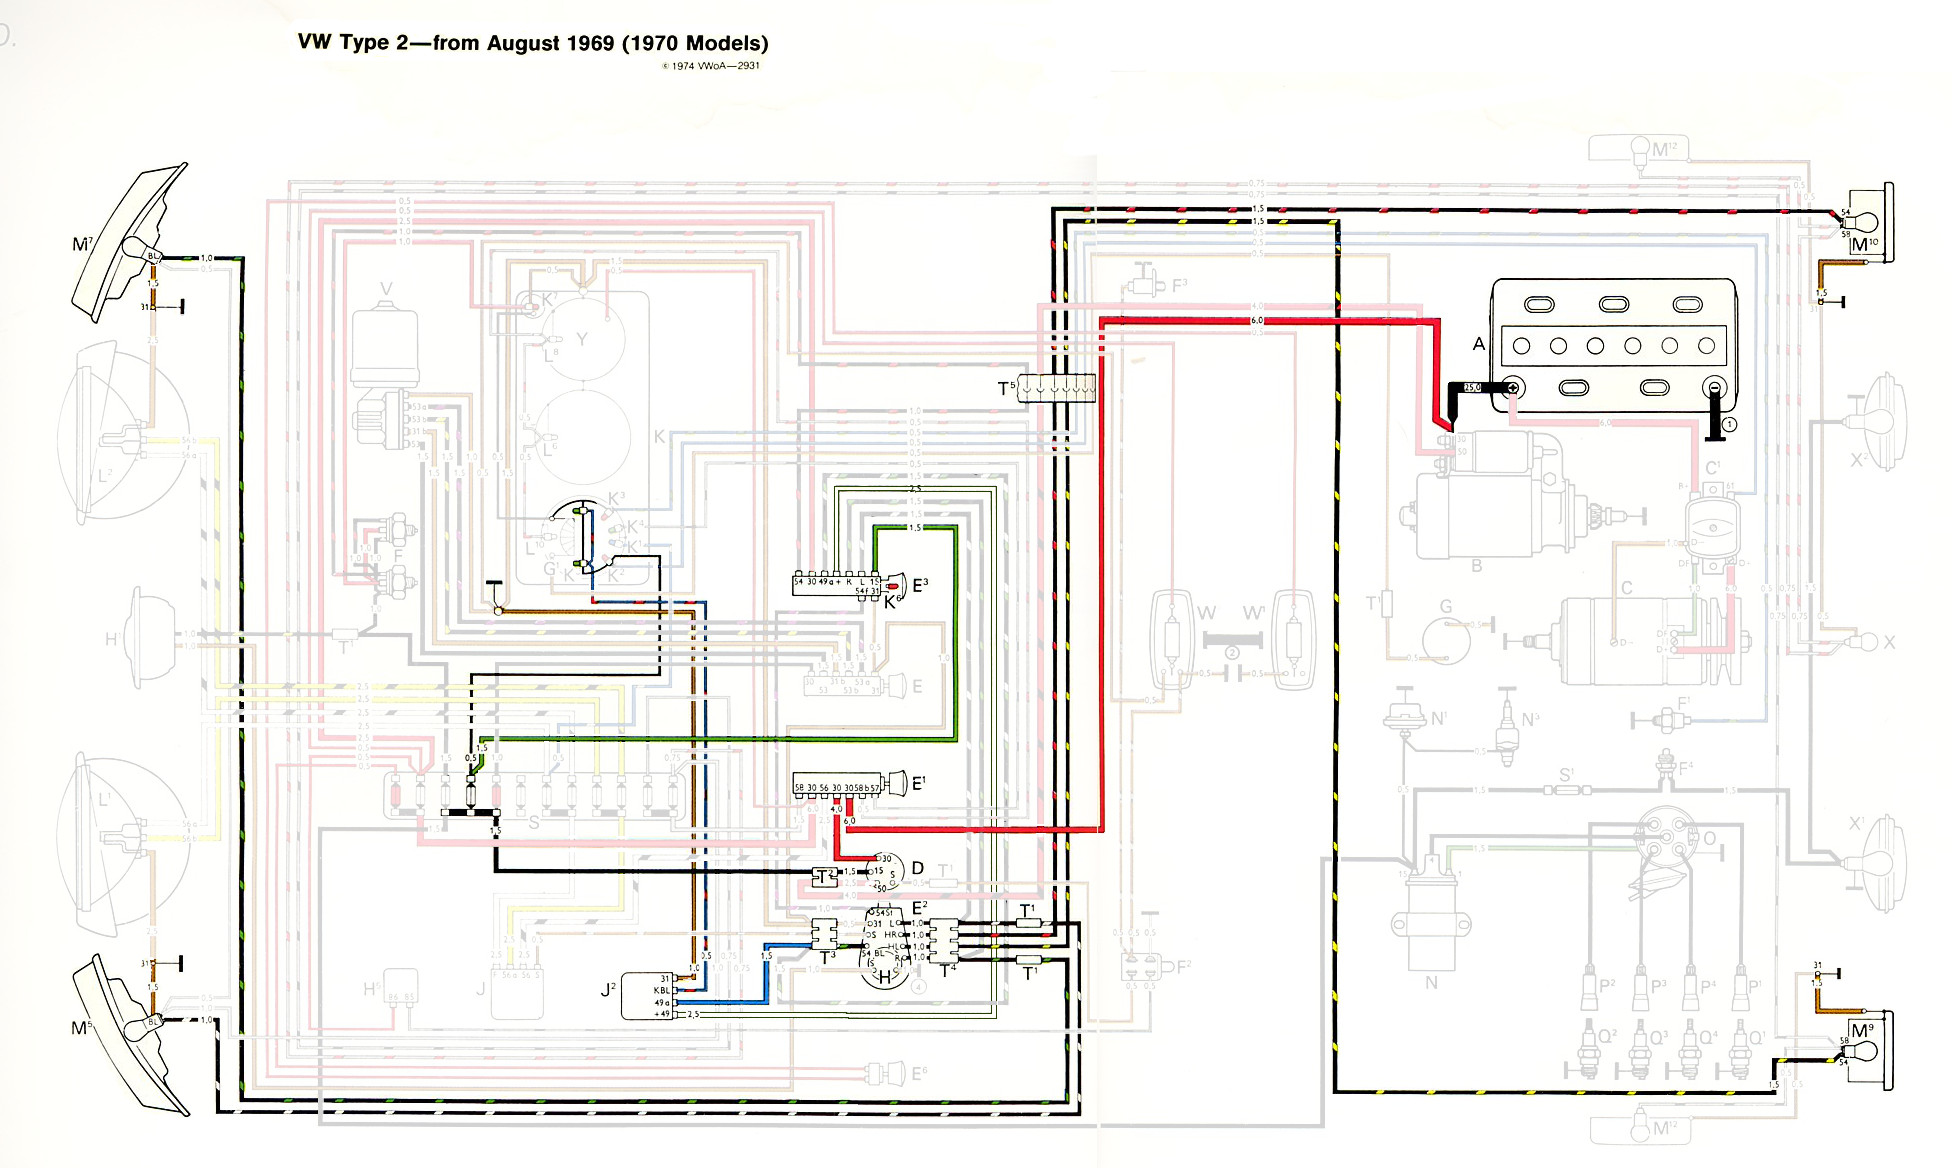 1970bus_signals 1970 vw beetle wiring diagram 1969 vw beetle turn signal wiring 1971 vw bus wiring diagram at nearapp.co